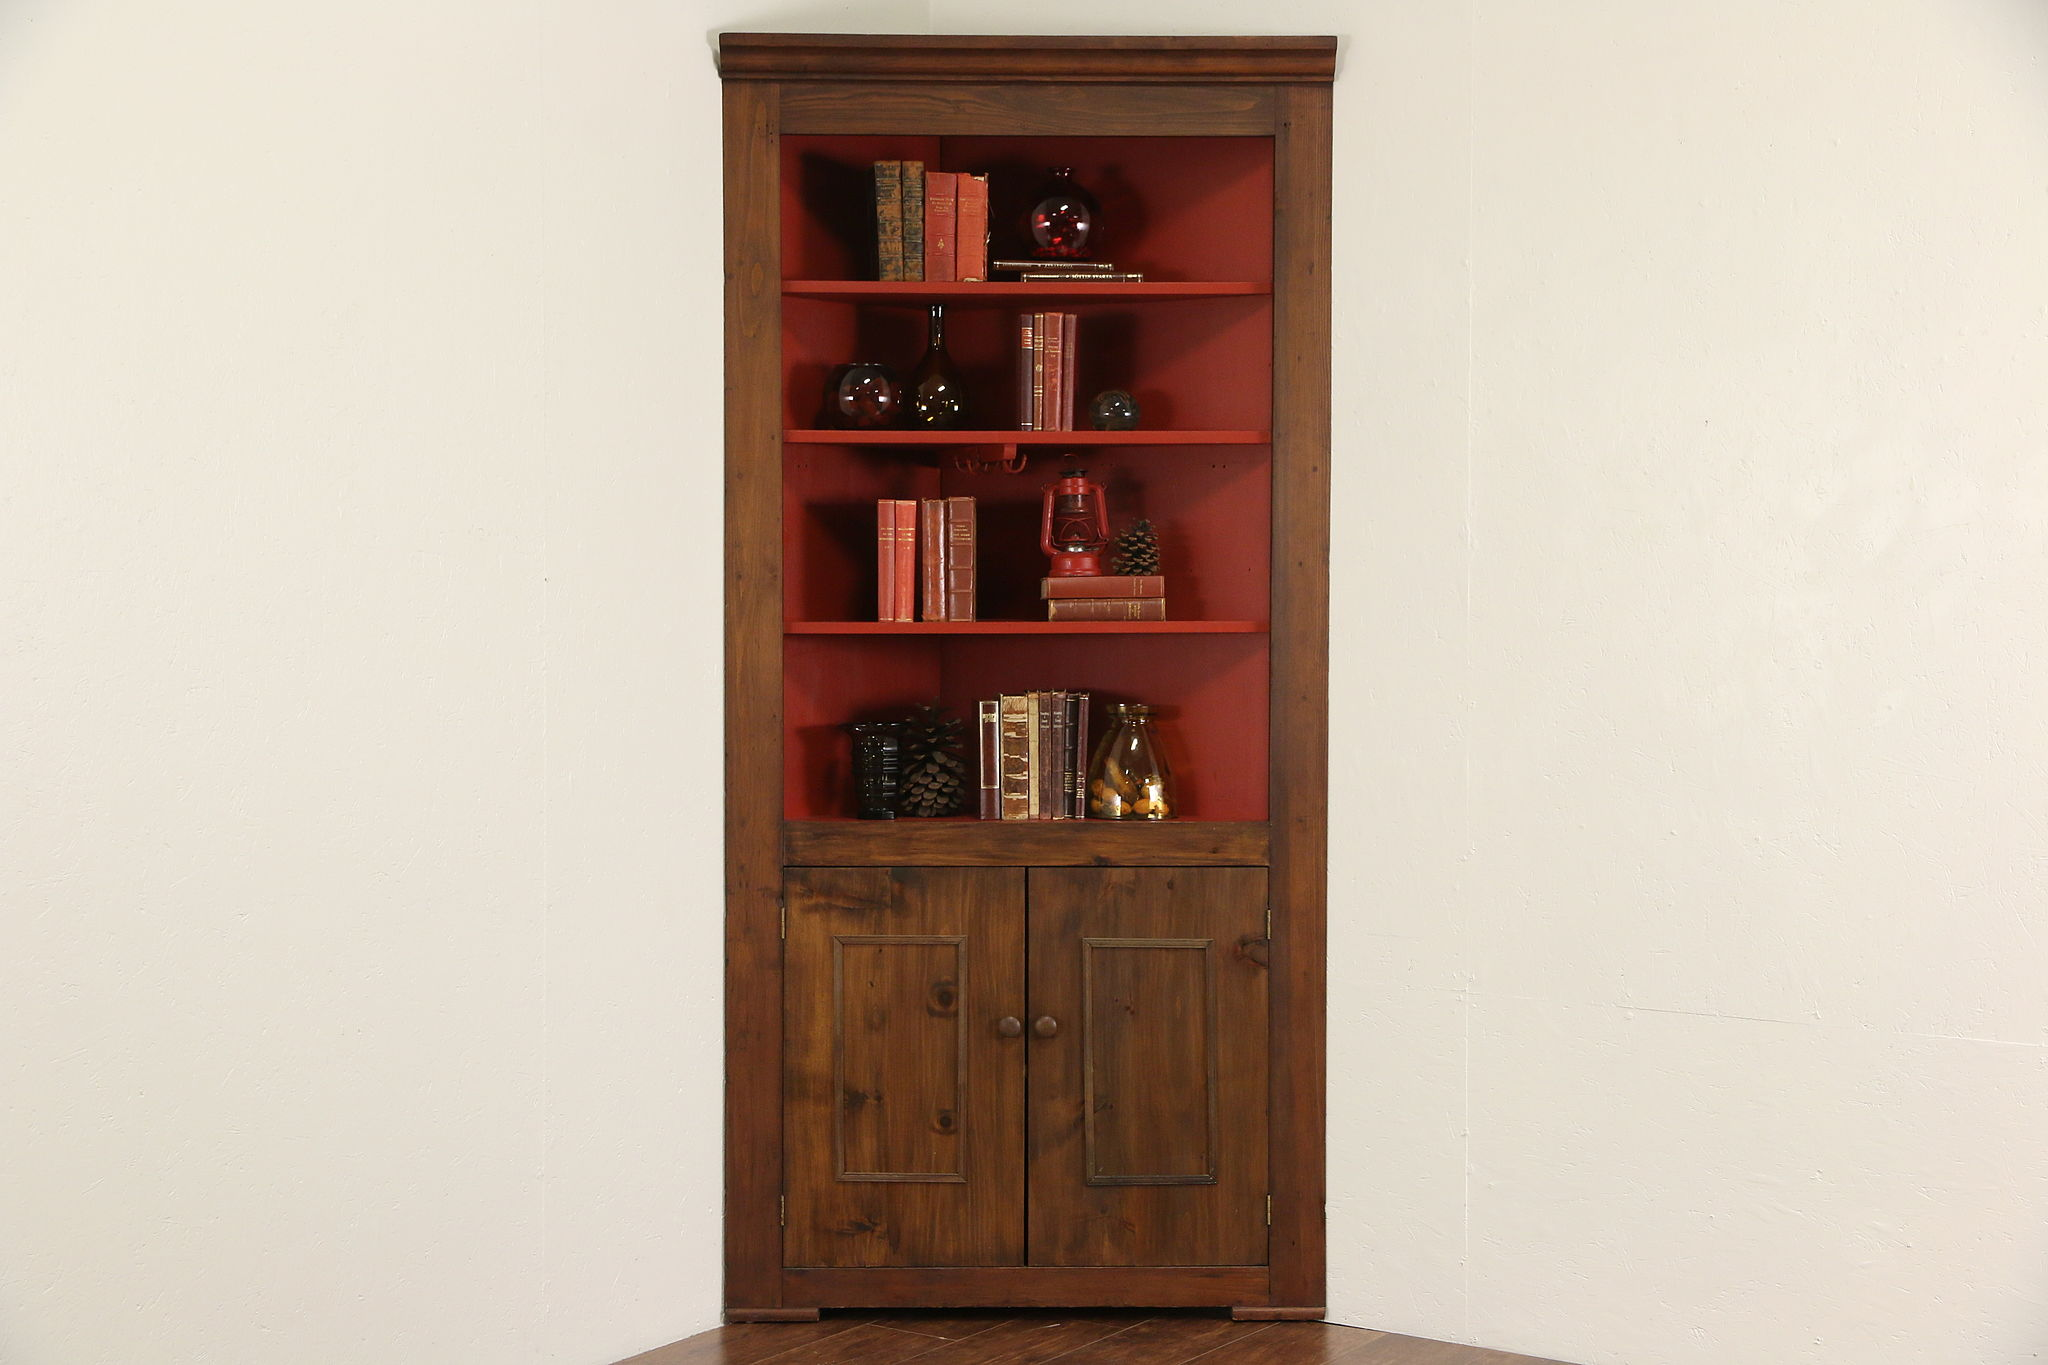 corn2 2 16cab - 20 Reasons Why People Like Antique Pine Corner Cabinet